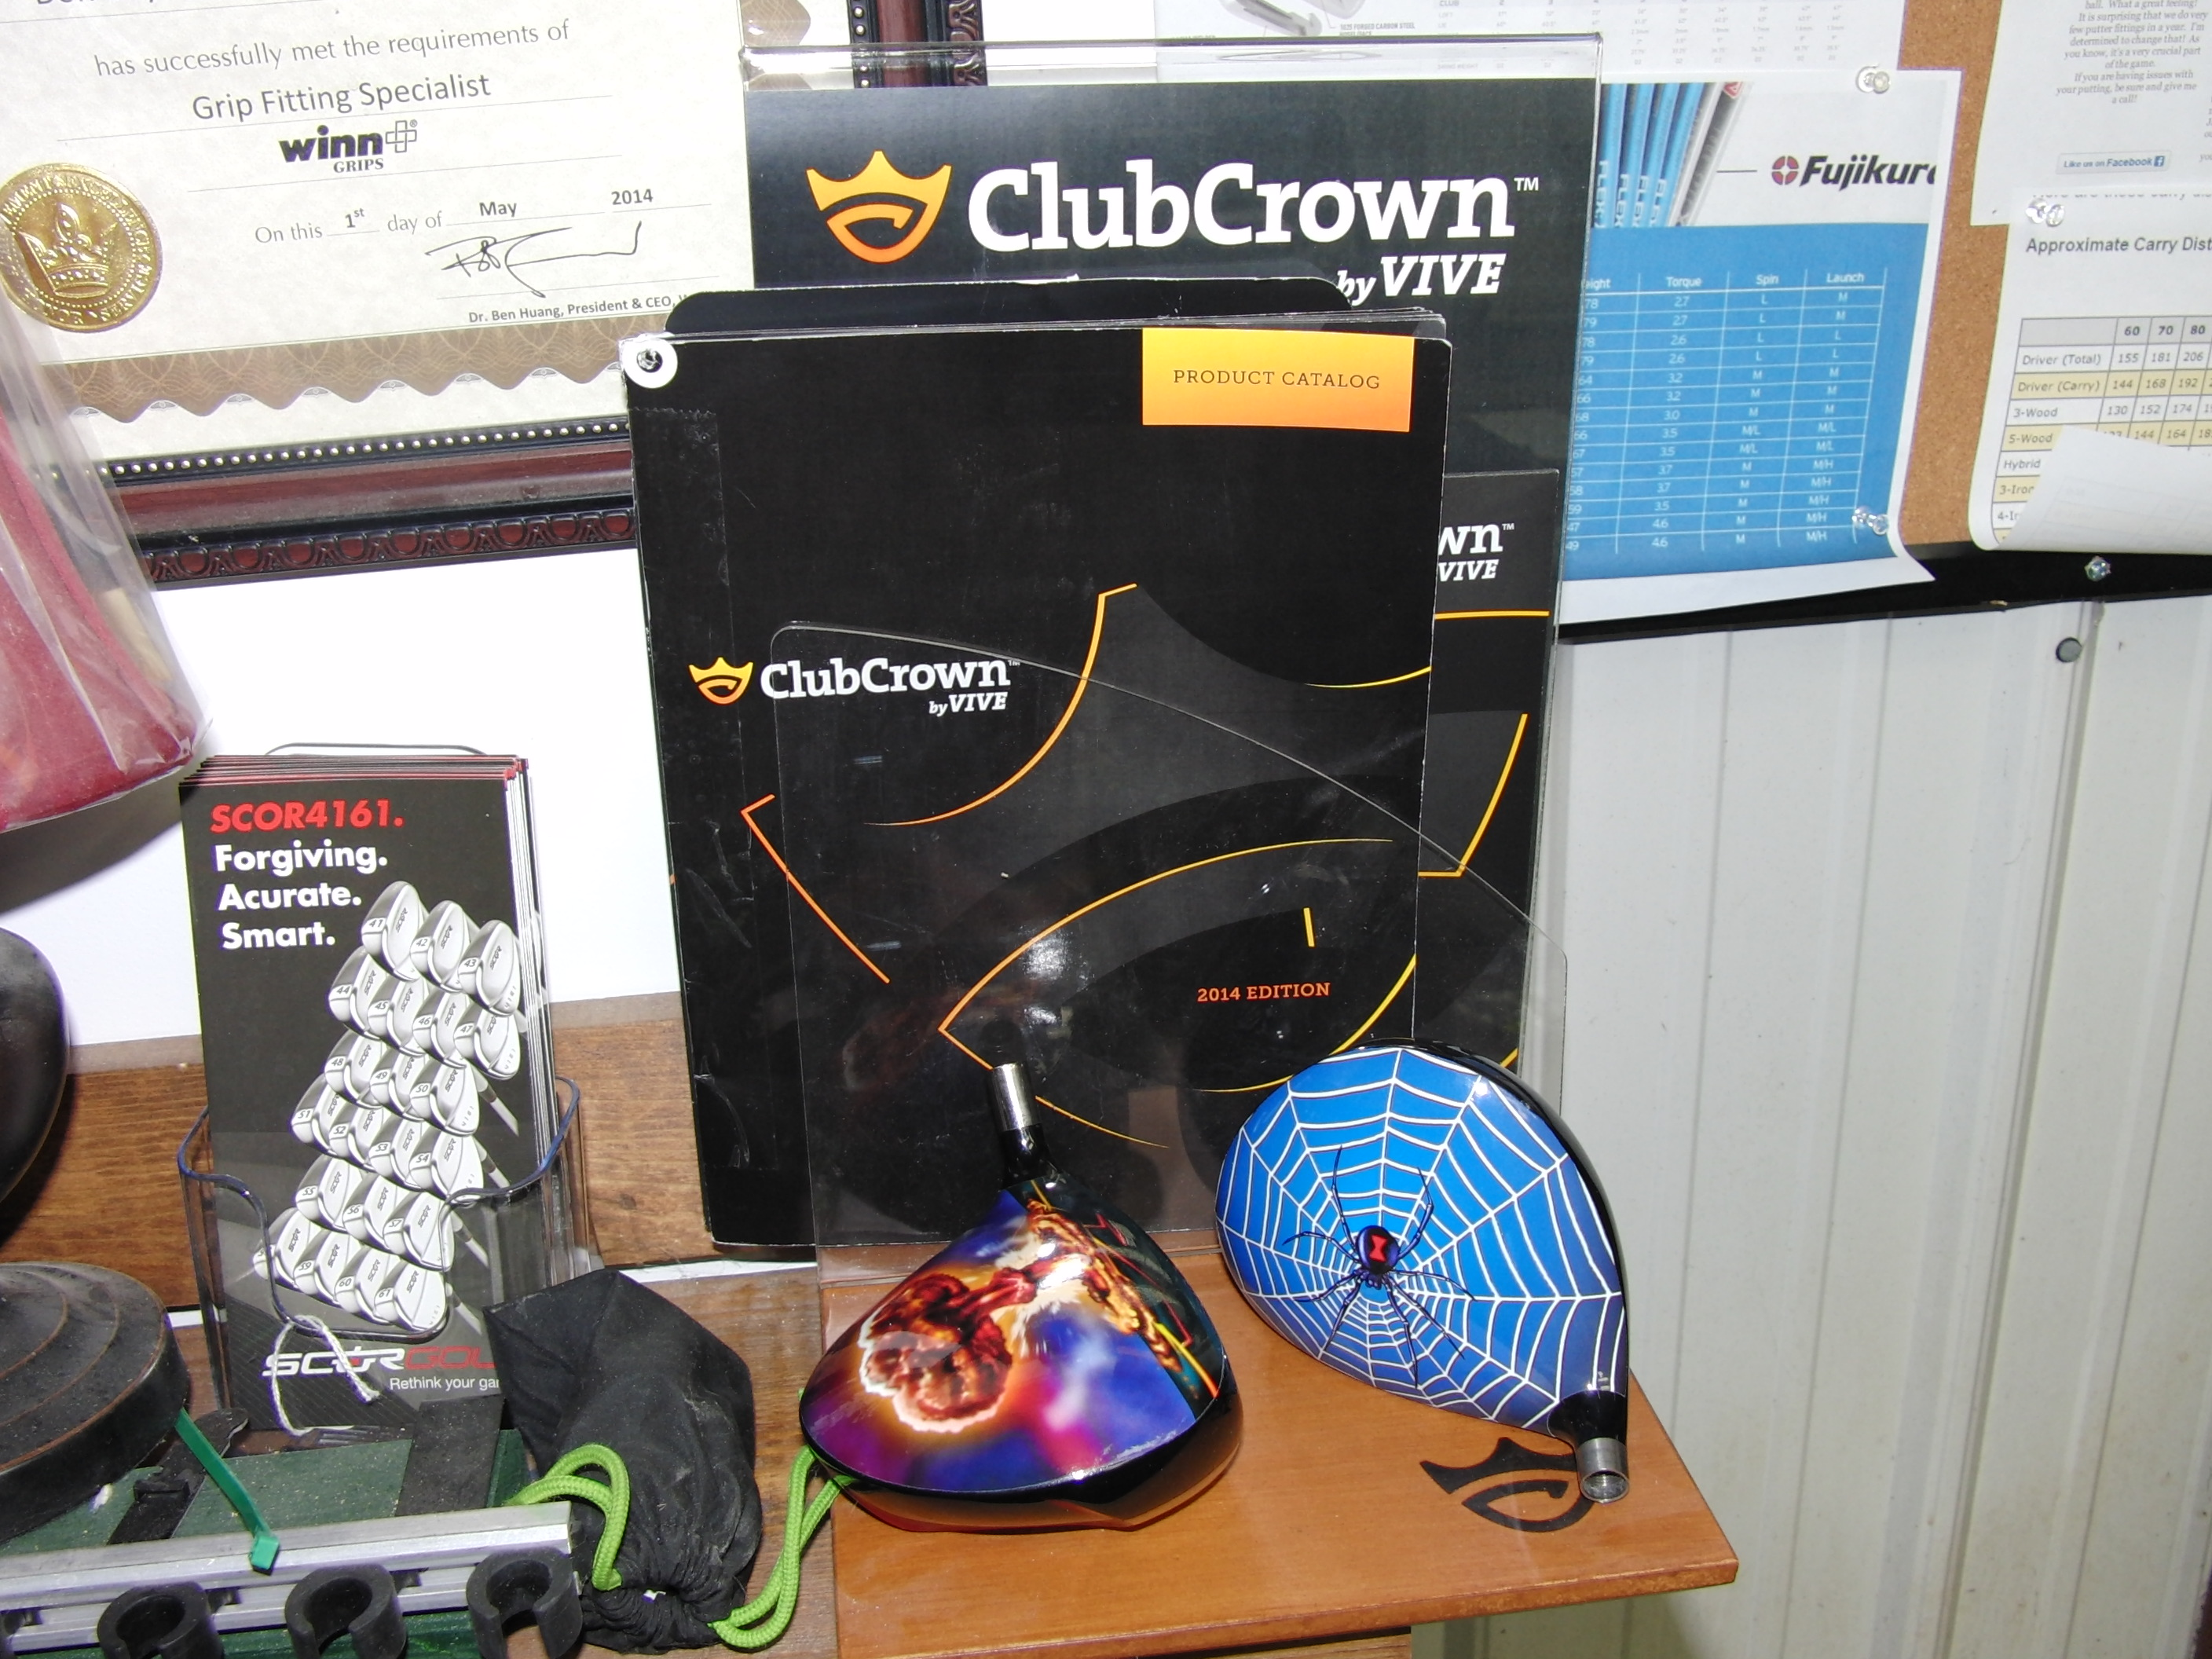 Club Crown Display.JPG